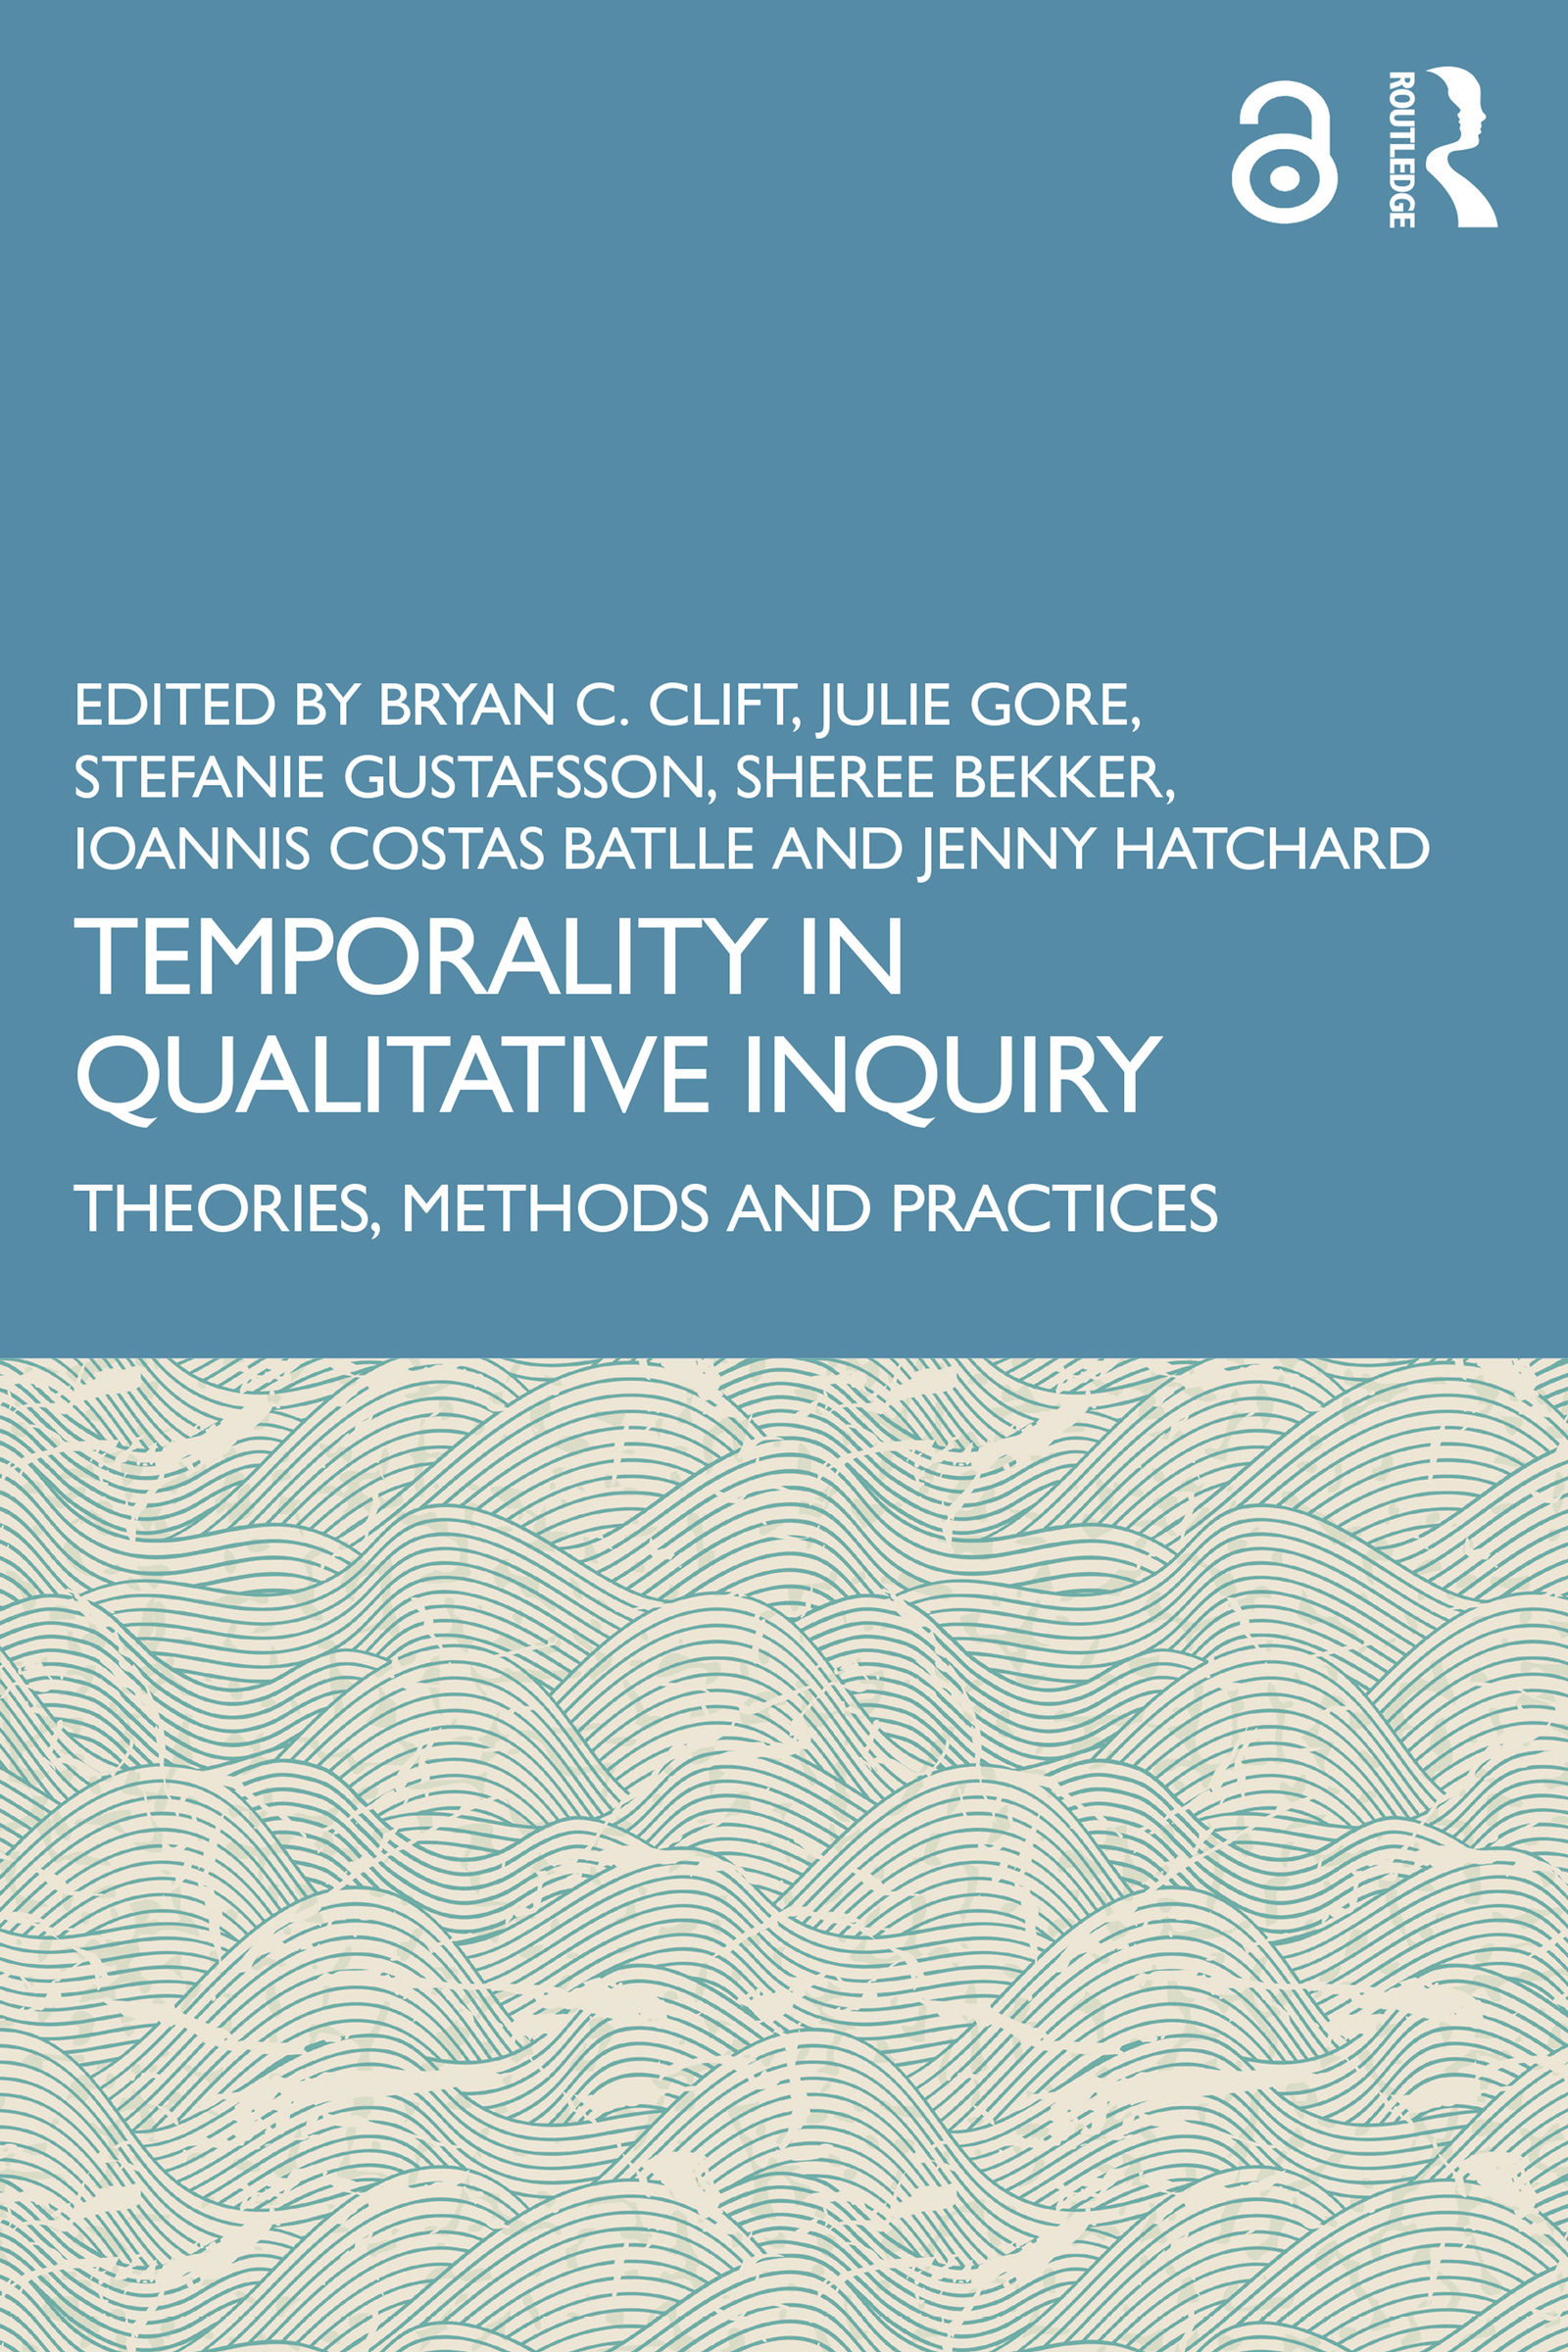 Trust and Relationships in Qualitative Research